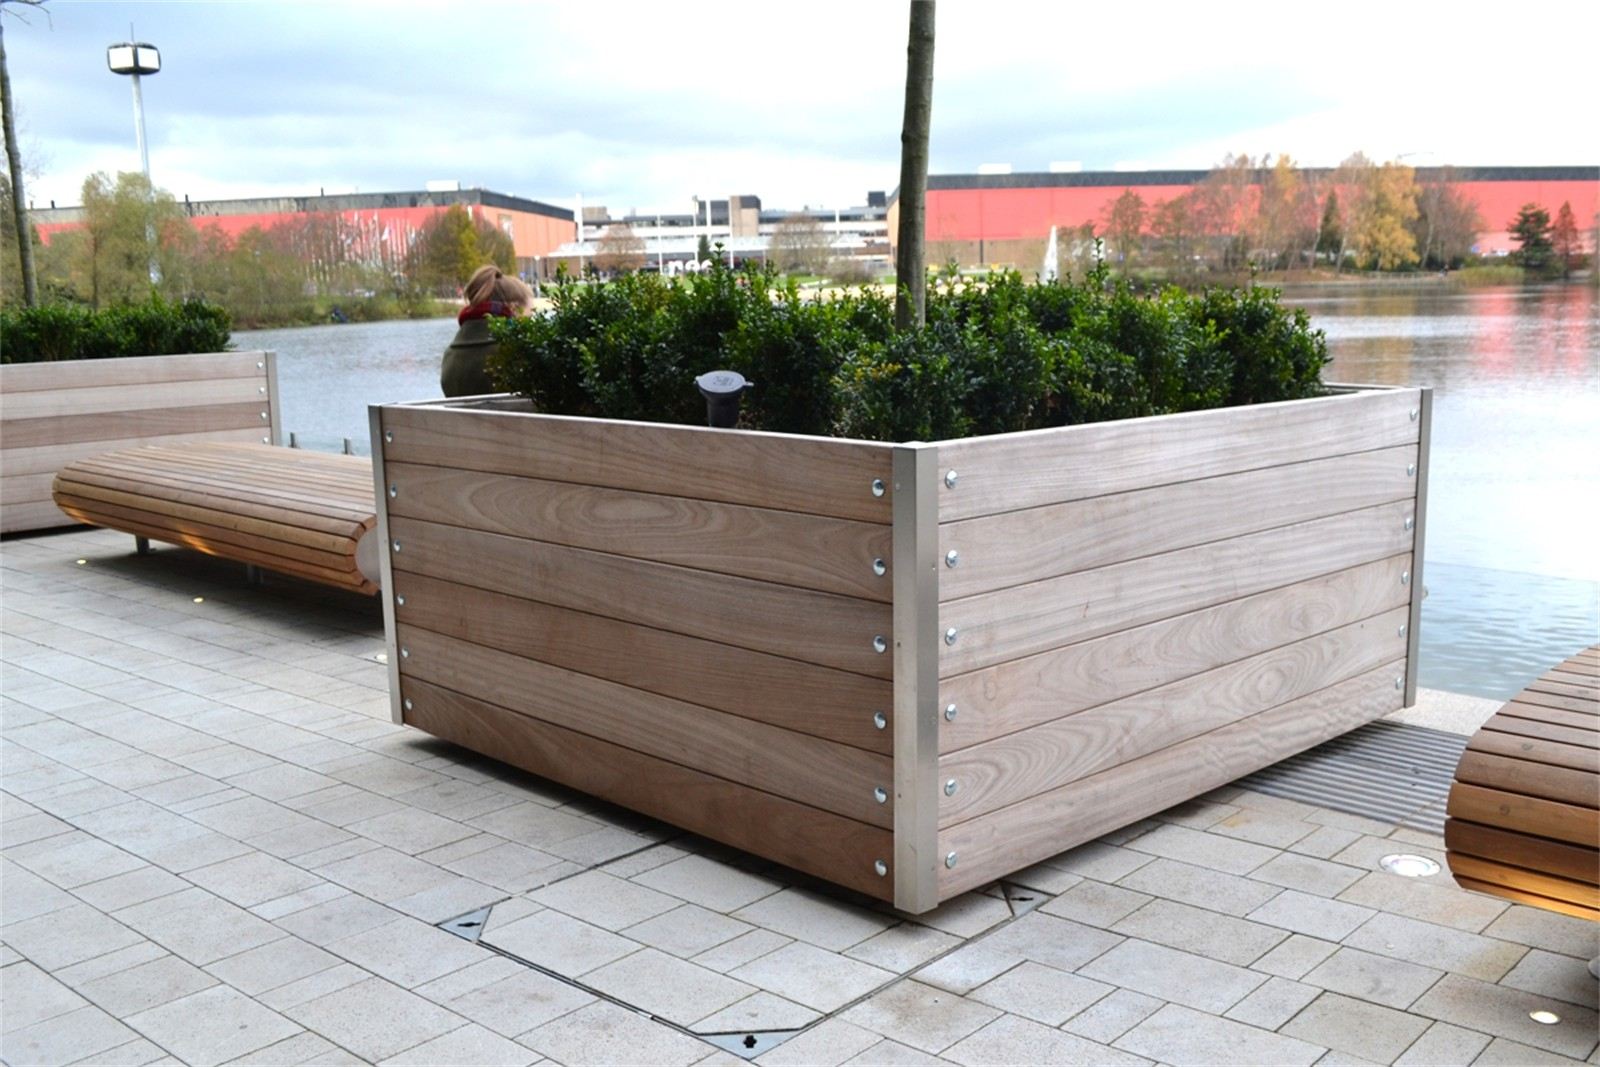 20pmw32 - Mews large planters